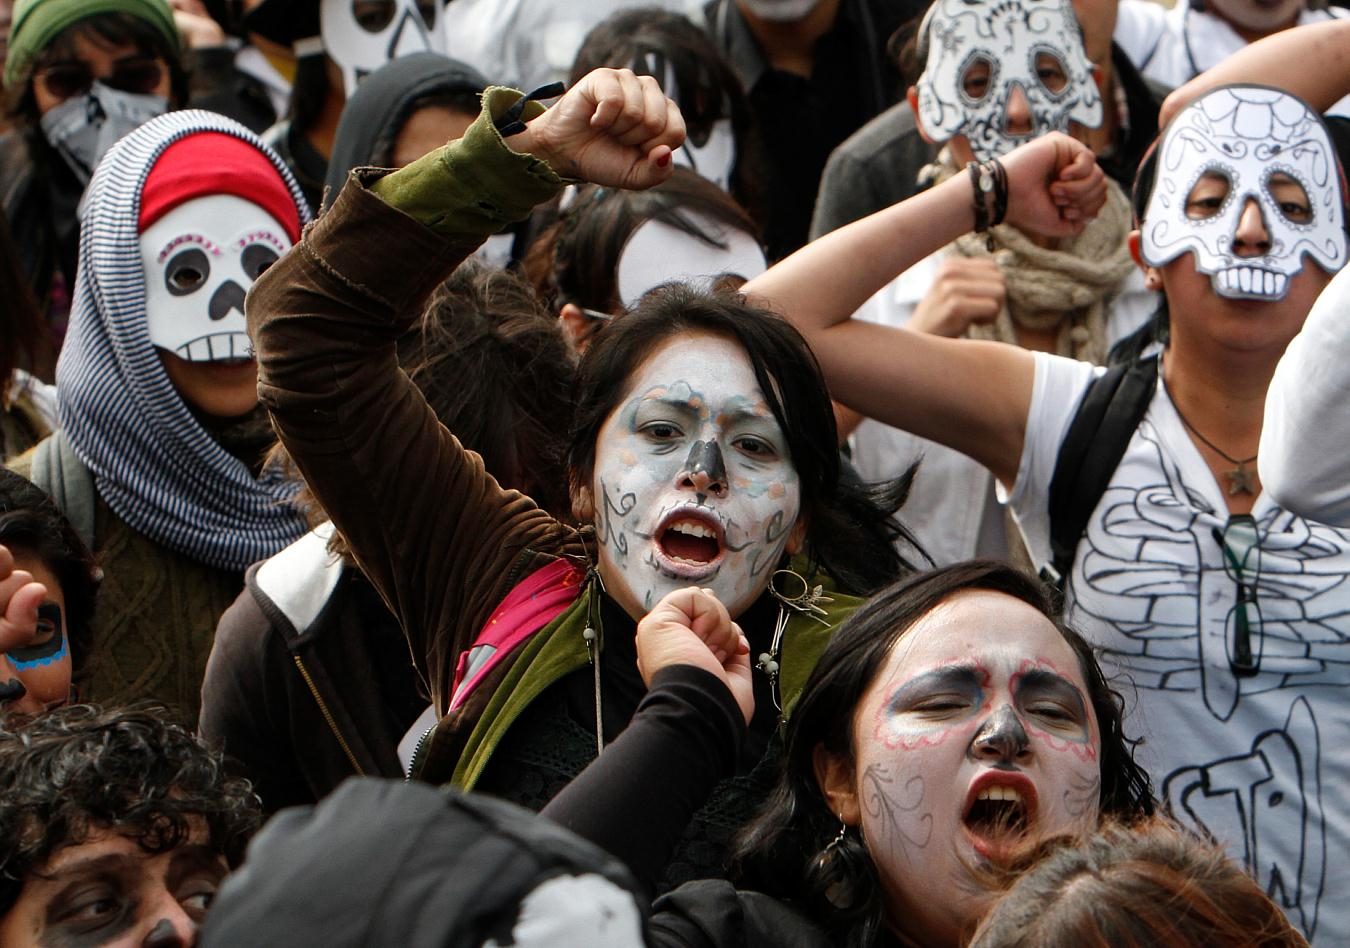 Demonstrators wore skull masks